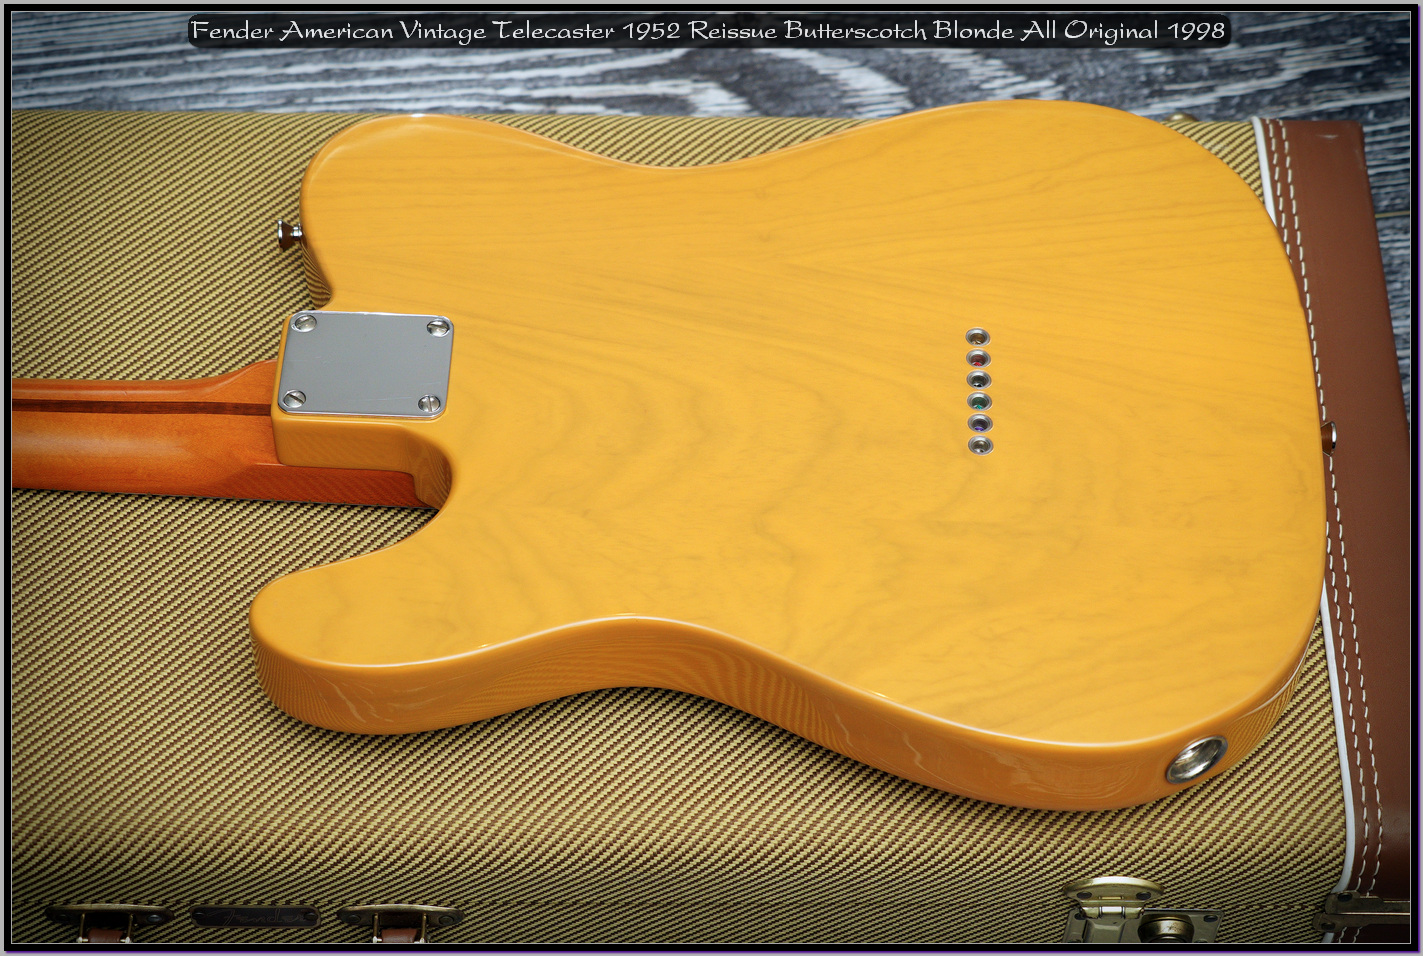 Fender American Vintage Telecaster 1952 Reissue Butterscotch Blonde All Original 1998 08_x1440.jpg